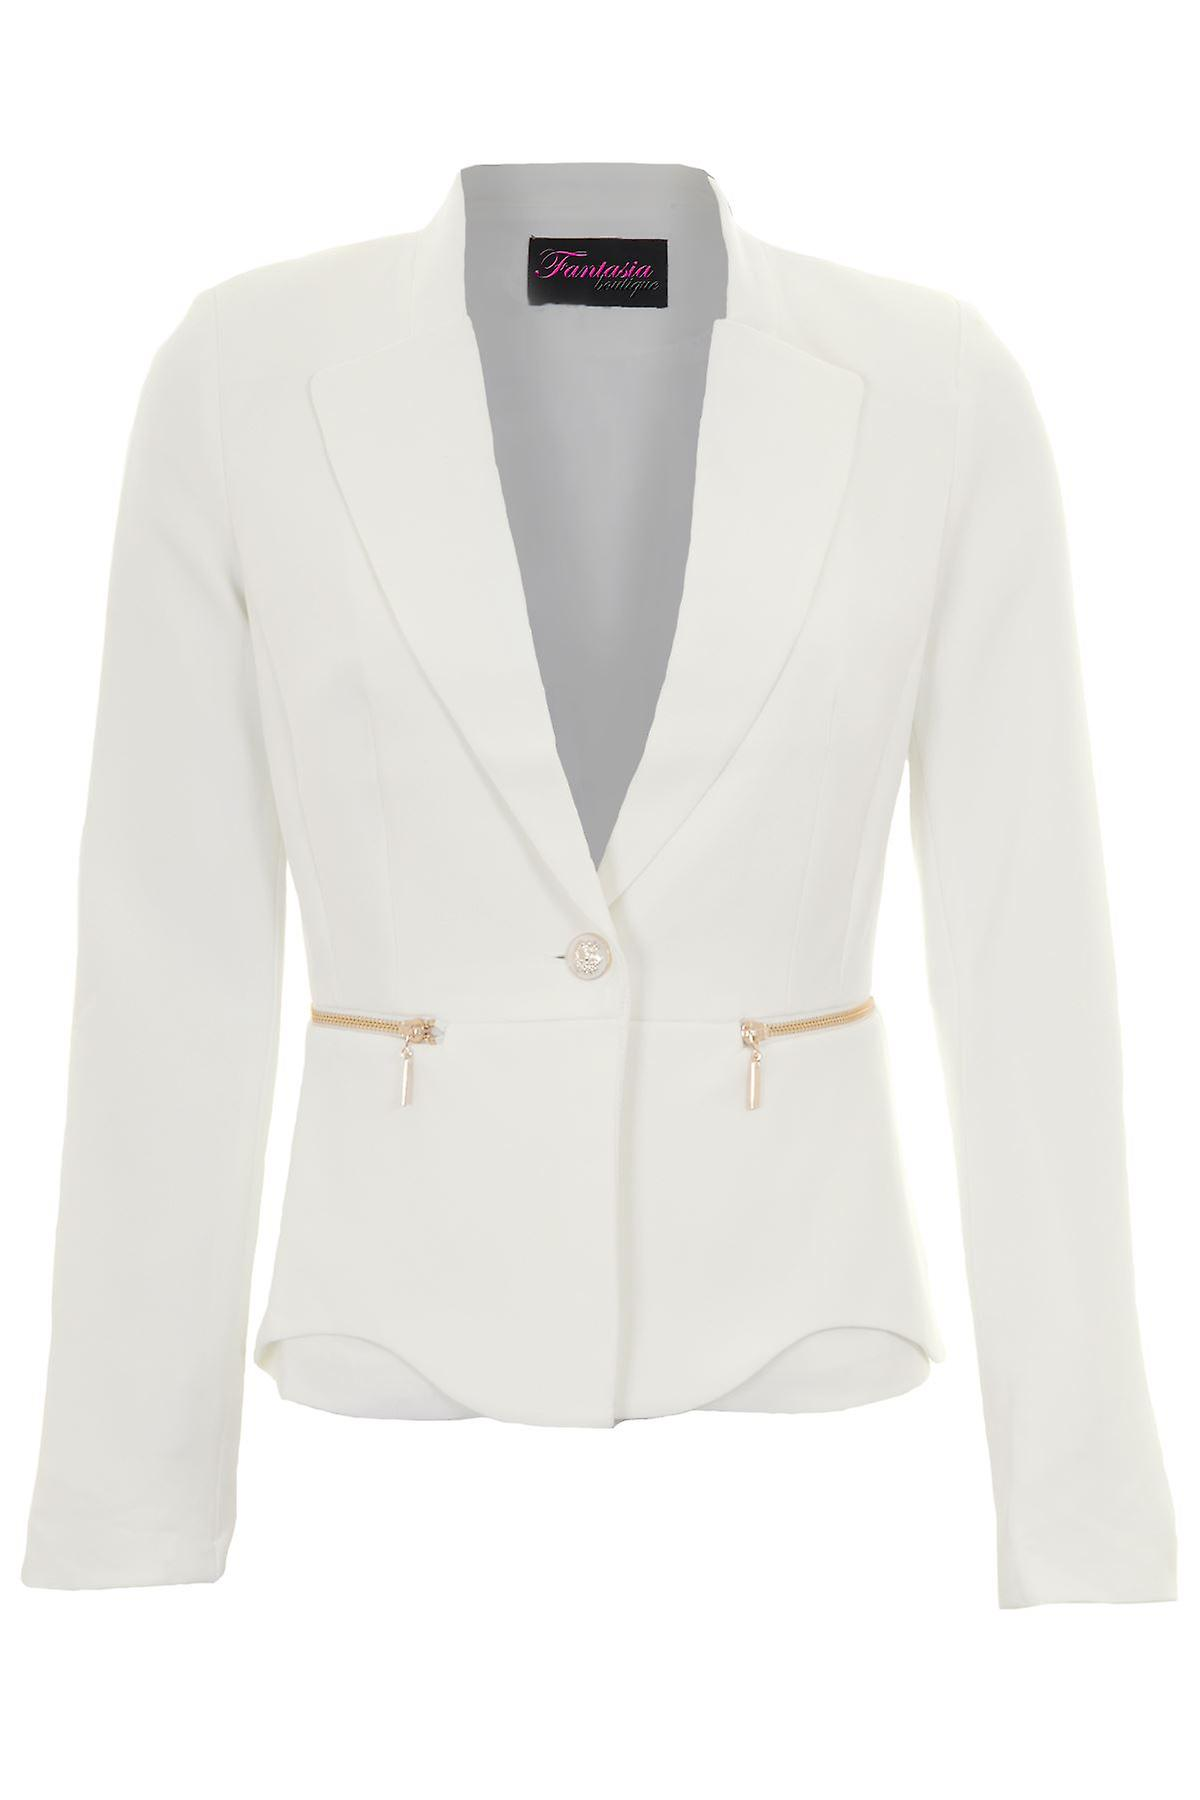 Ladies Long Sleeve Collared Low V Lined Formal Office Zip Detail Blazer Jacket